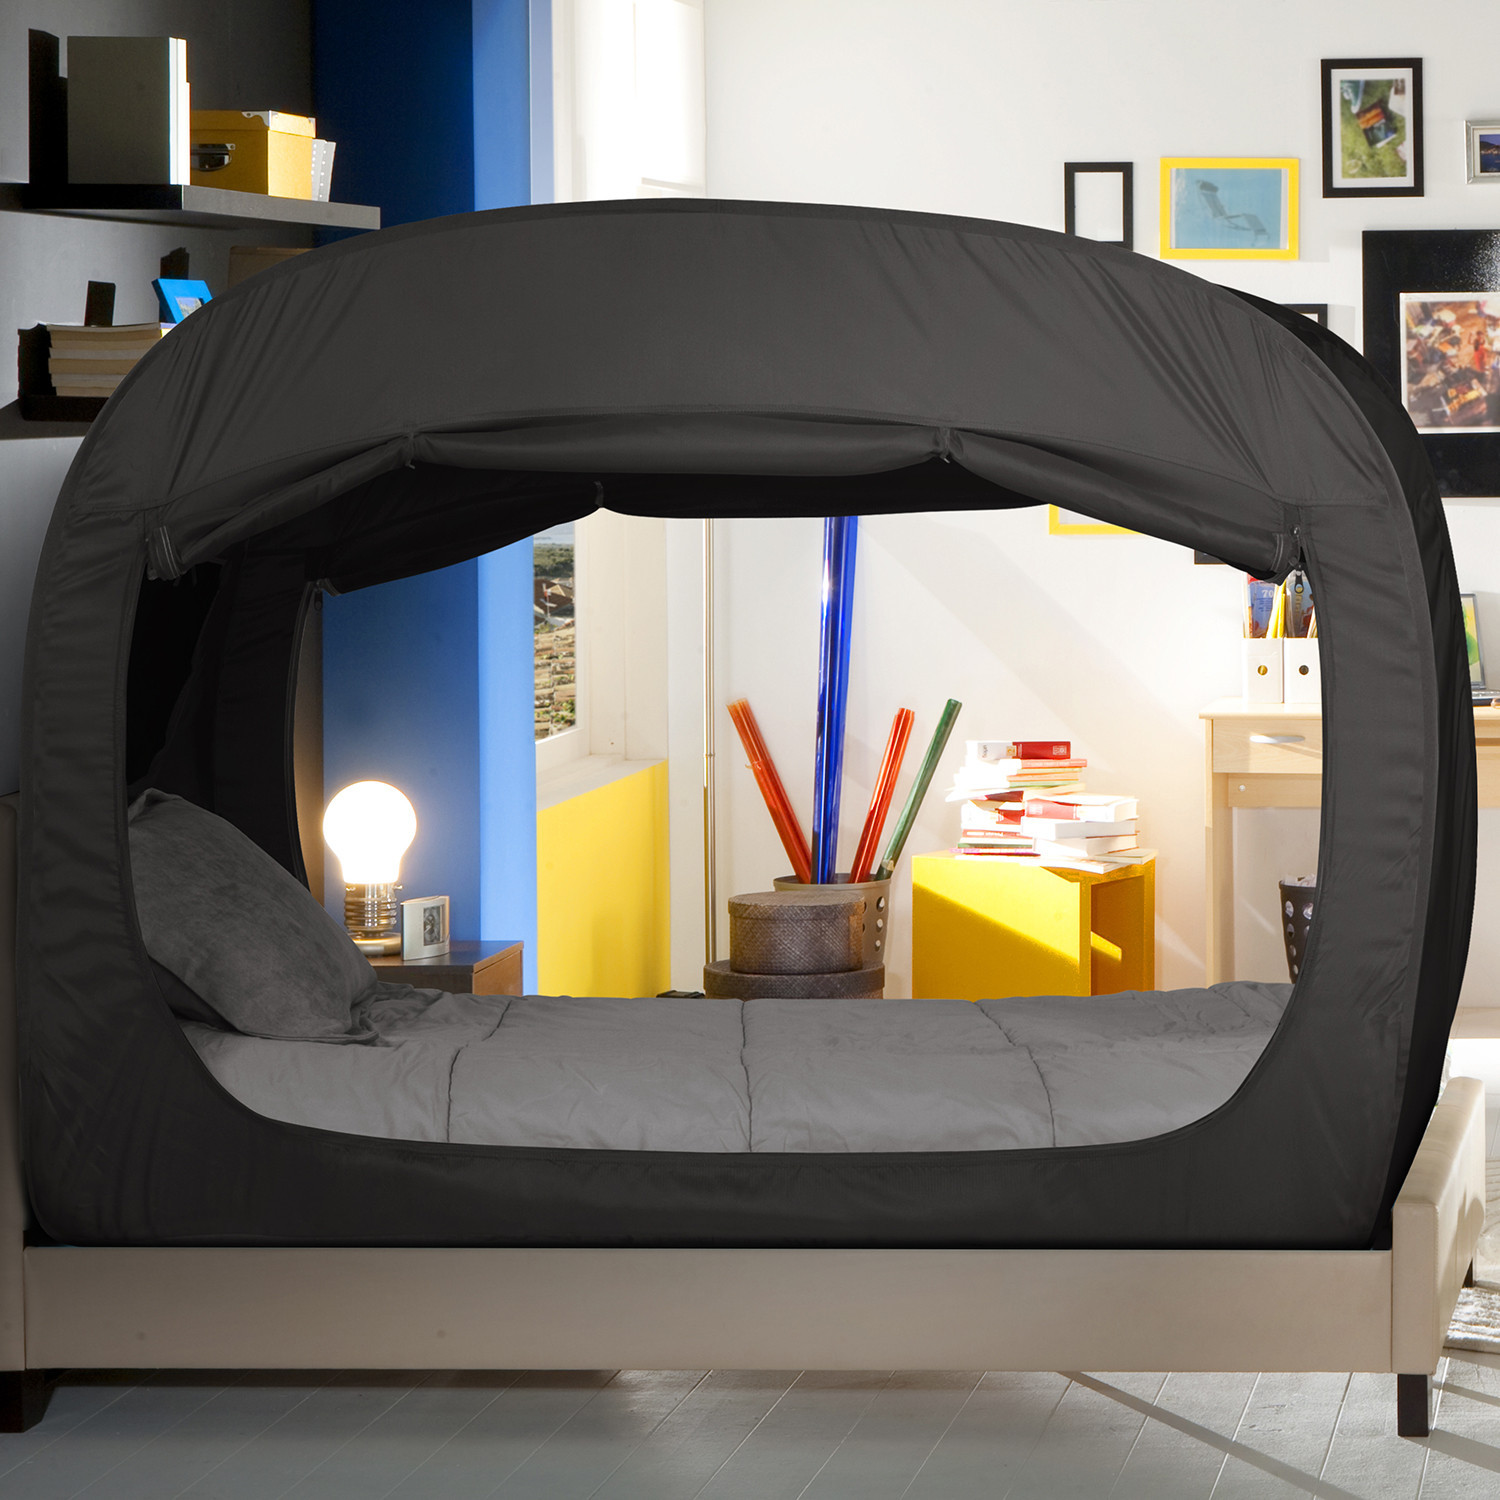 & Privacy Pop Bed Tent | LifeStyle Fancy